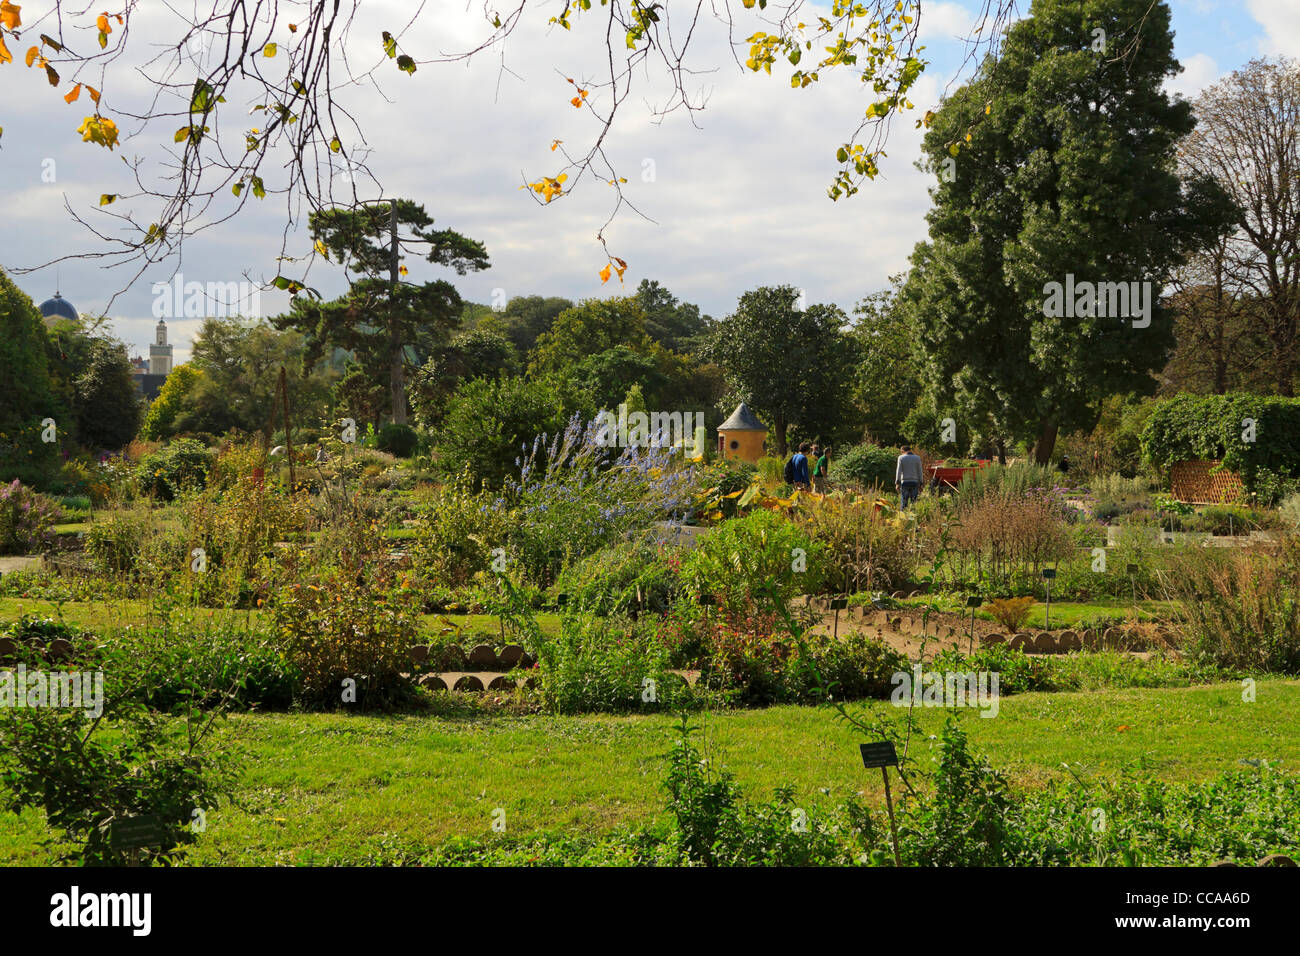 Jardin des plantes paris stock photo royalty free image for Paris jardin plantes